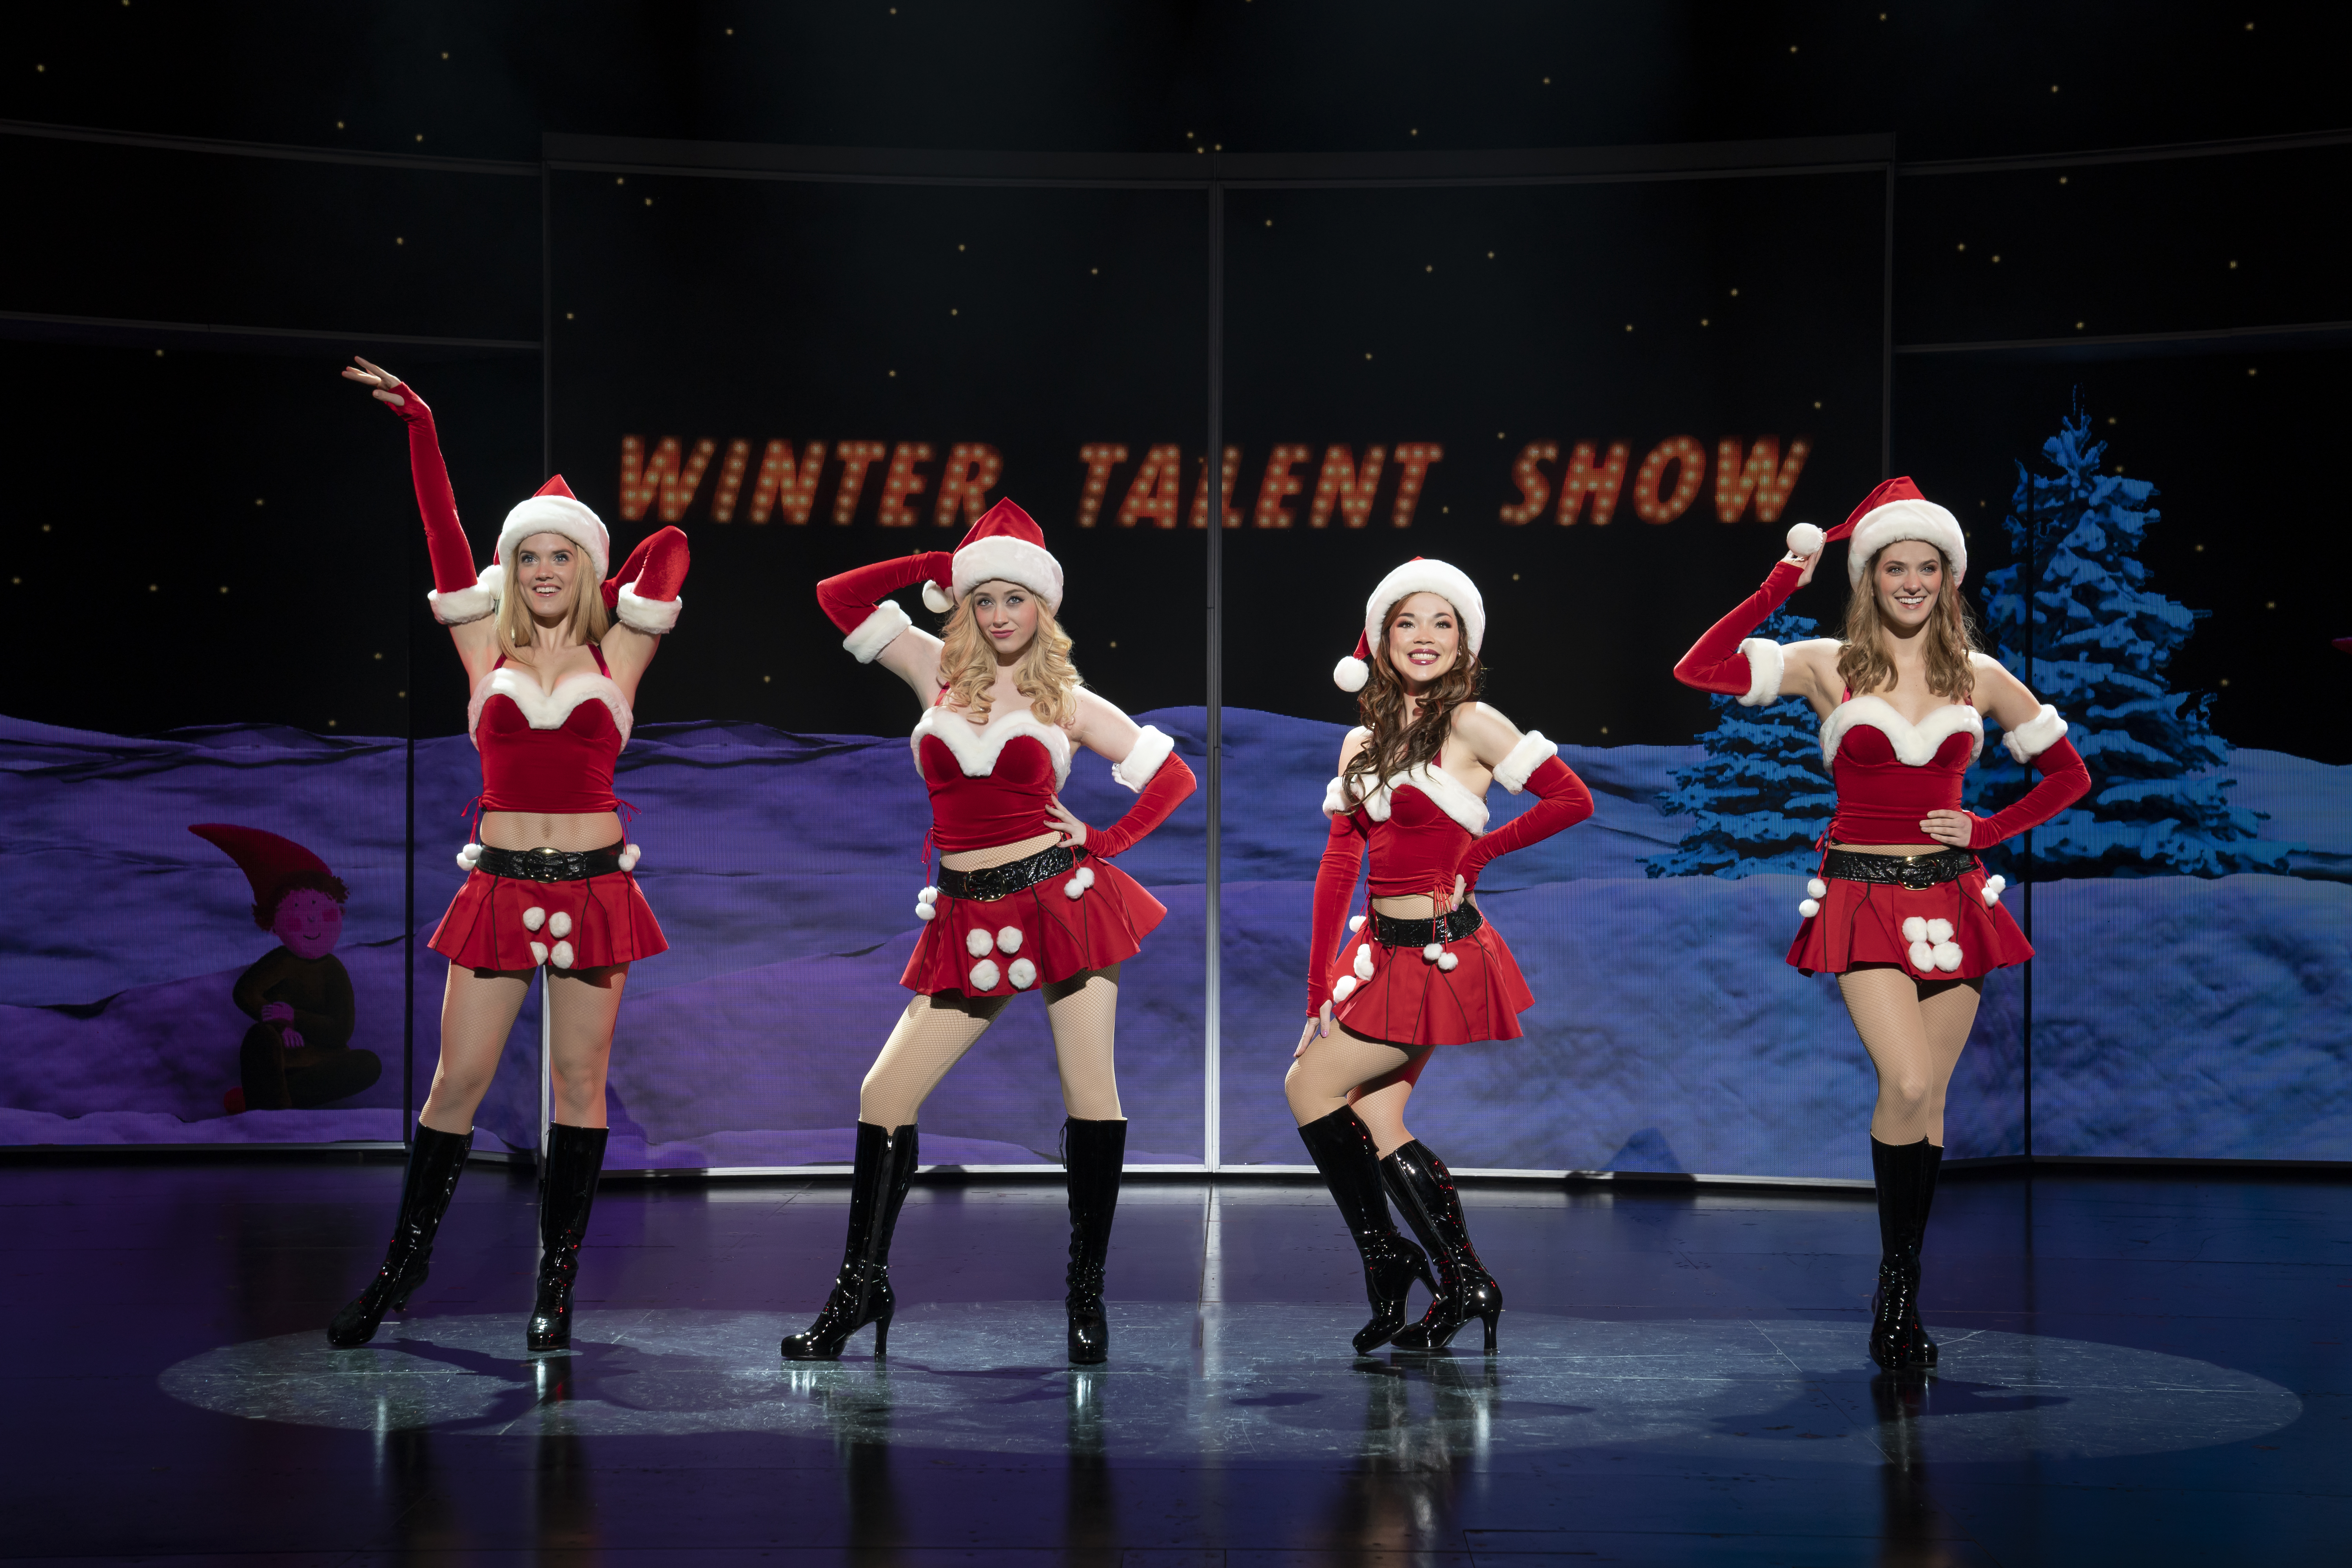 """Pictured (from left): Jonalyn Saxer (Karen Smith), Mariah Rose Faith (Regina George), Megan Masako Haley (Gretchen Wieners), and Danielle Wade (Cady Heron) in the National Touring Company of """"Mean Girls."""""""